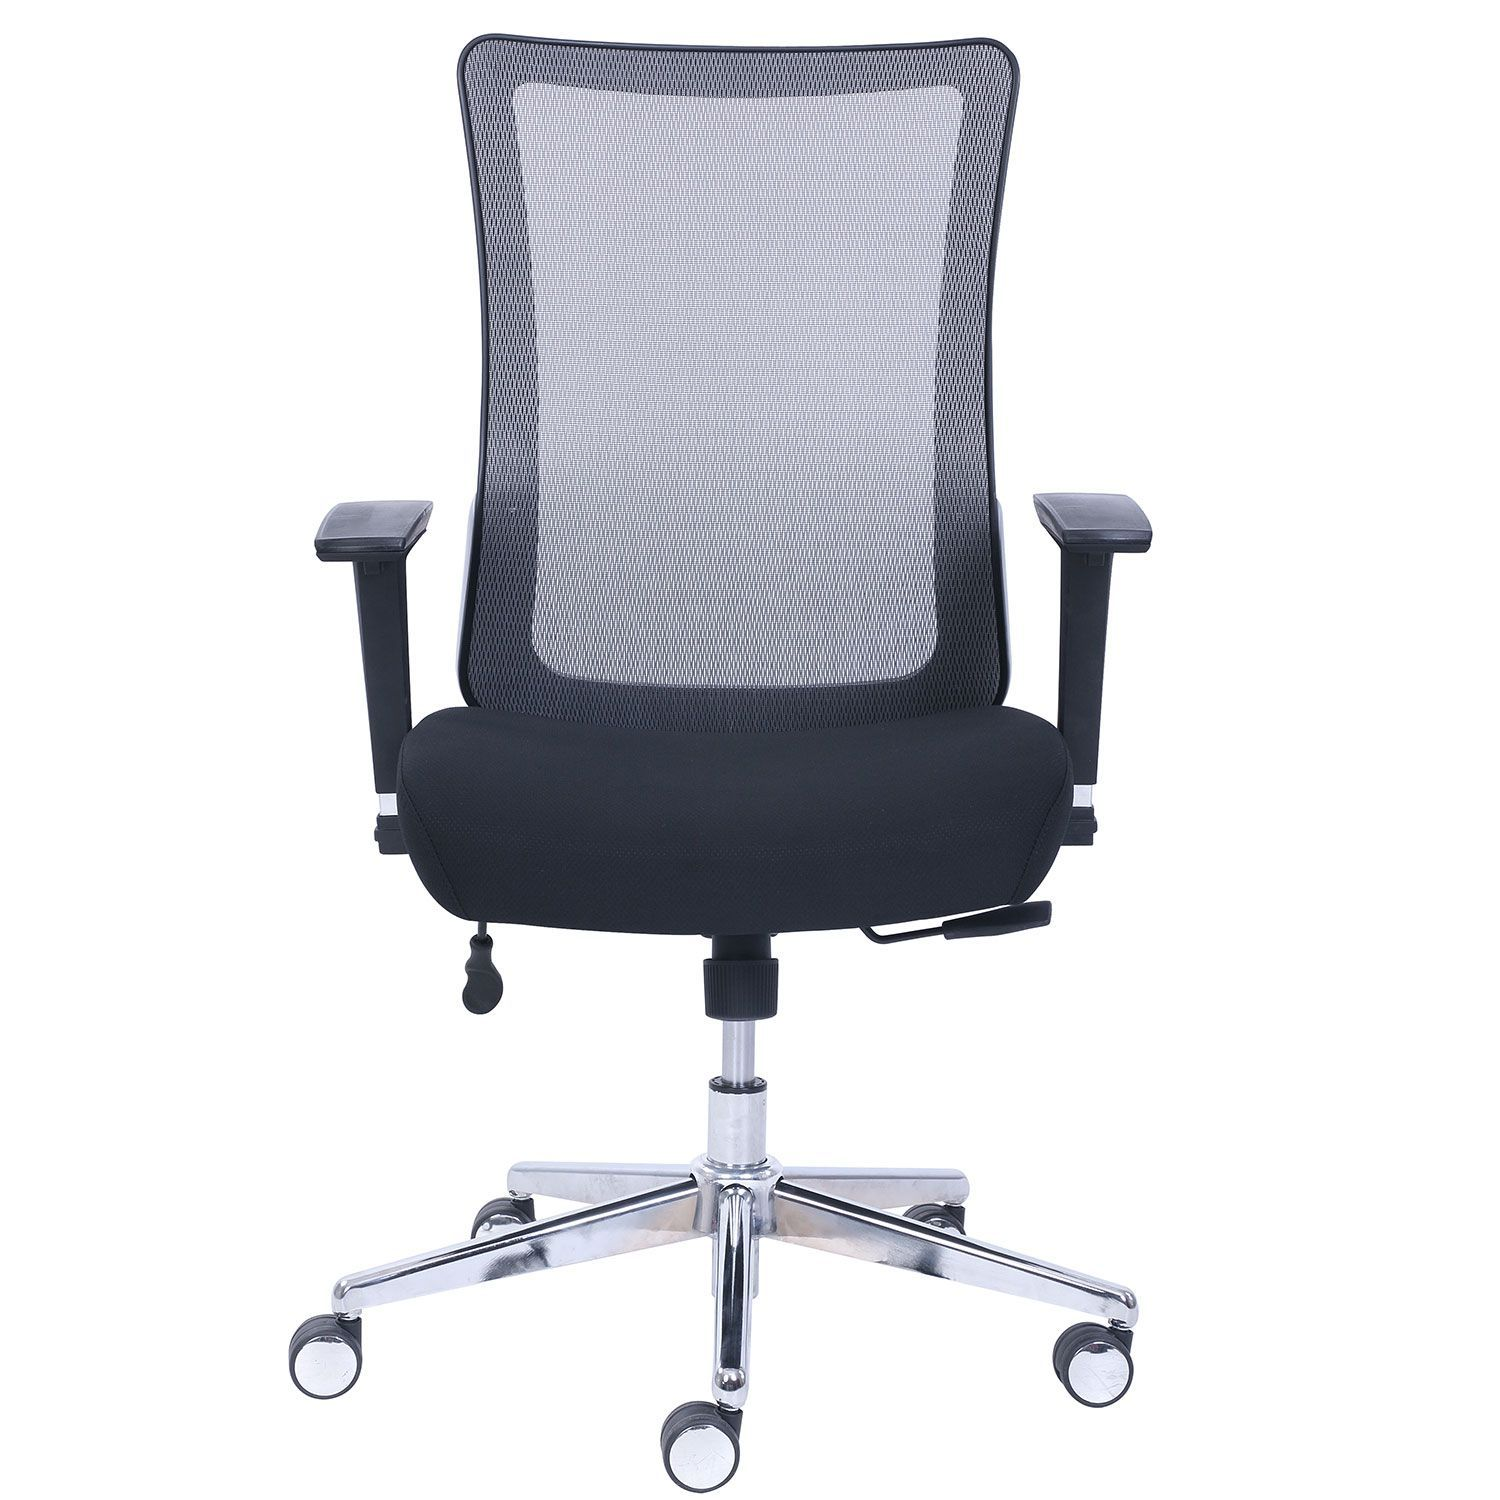 Swell Wellness By Design Mesh Task Chair Supports Up To 275 Lbs Ocoug Best Dining Table And Chair Ideas Images Ocougorg